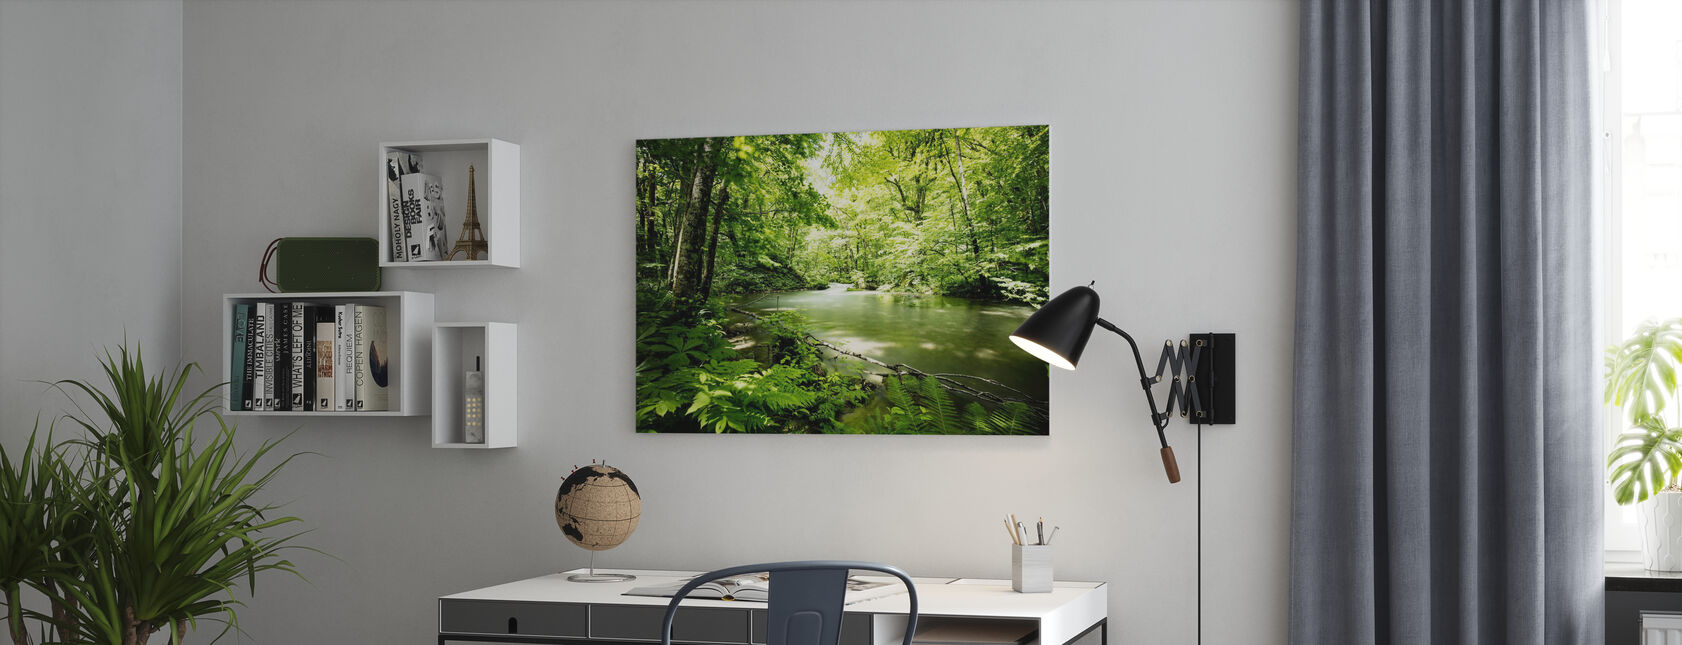 Deep into the Forest - Canvas print - Office